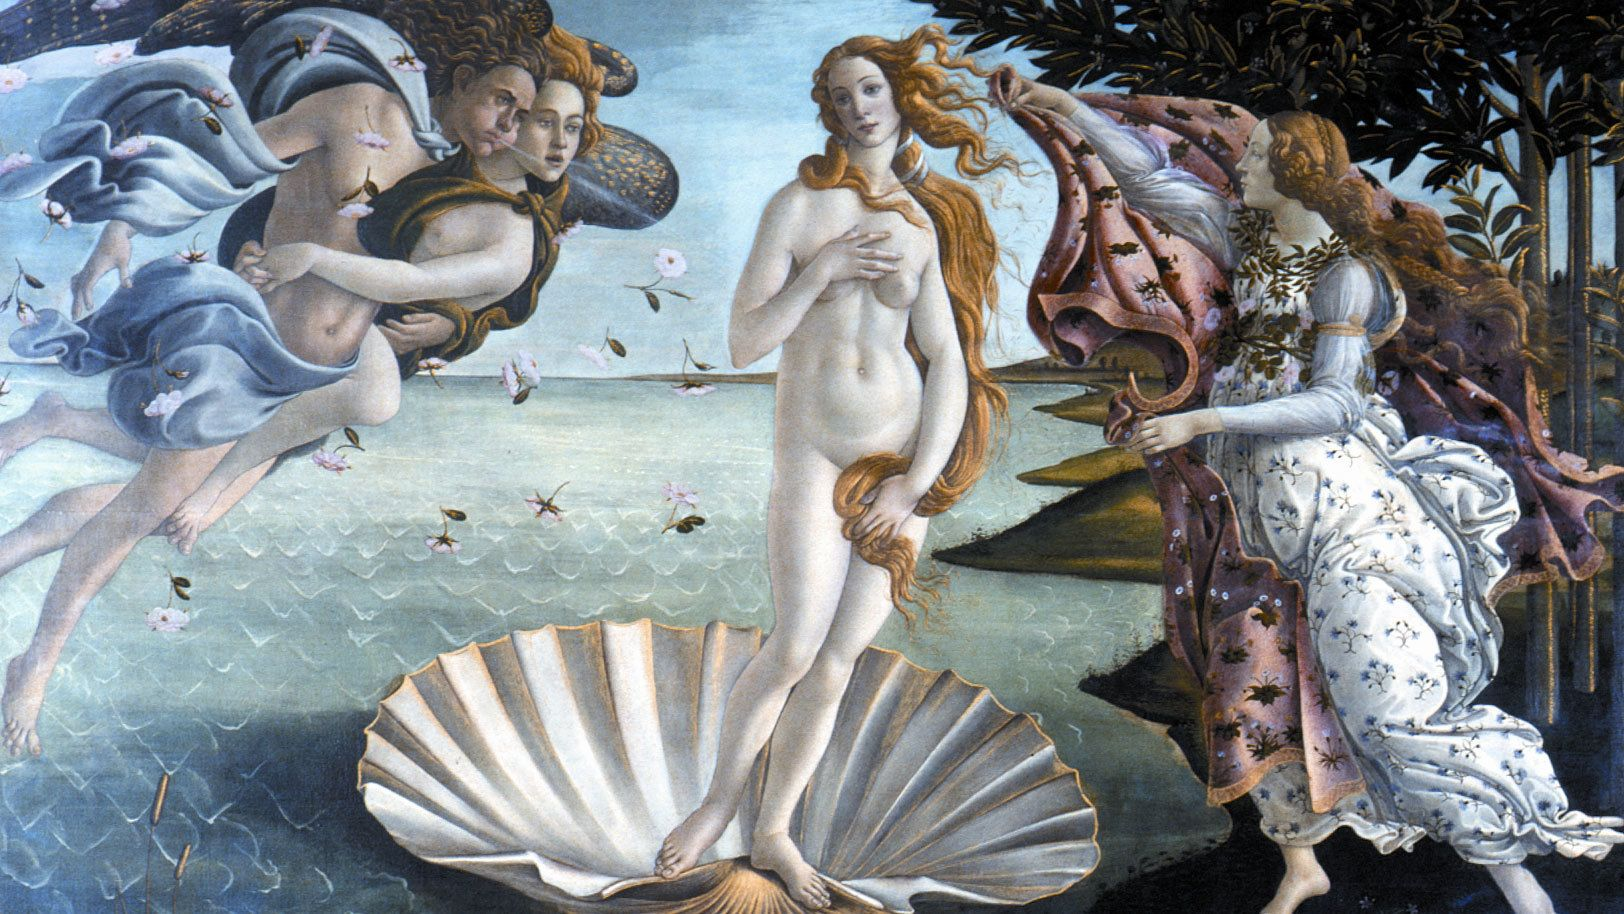 The Birth of Venus painting in Florence